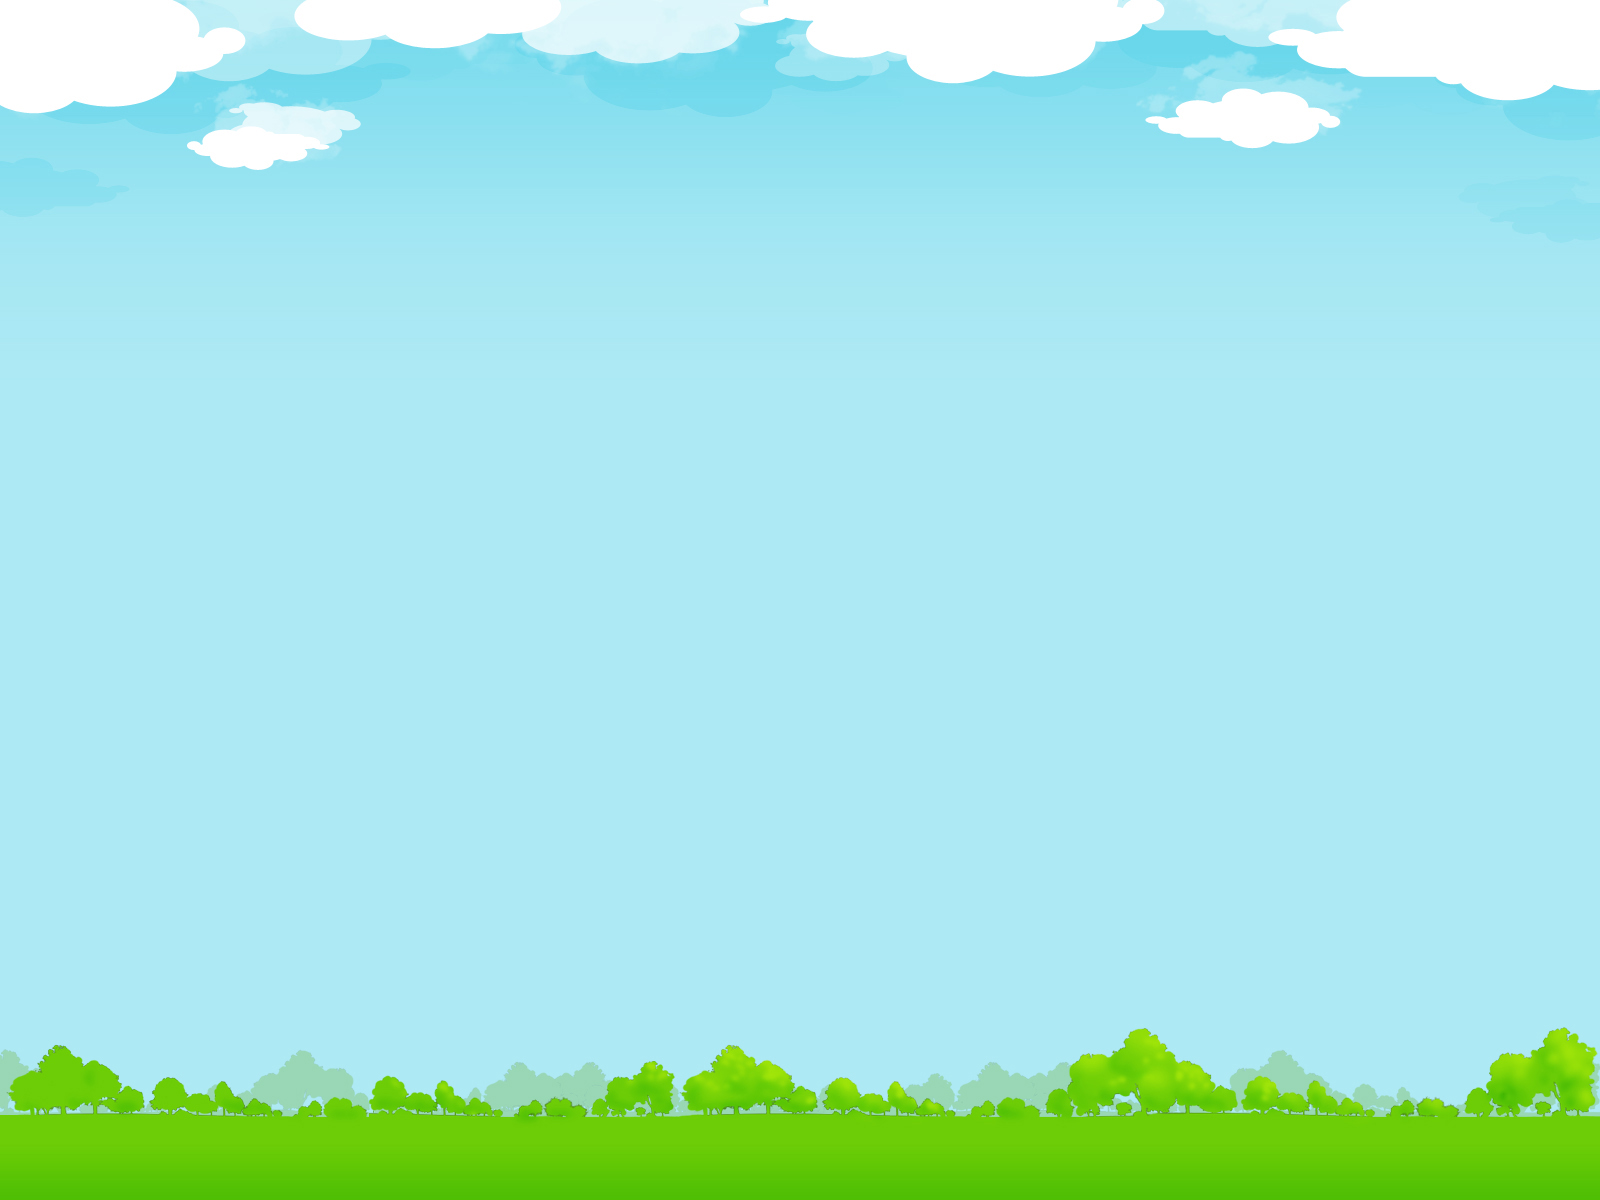 Nature background clipart clipart kid